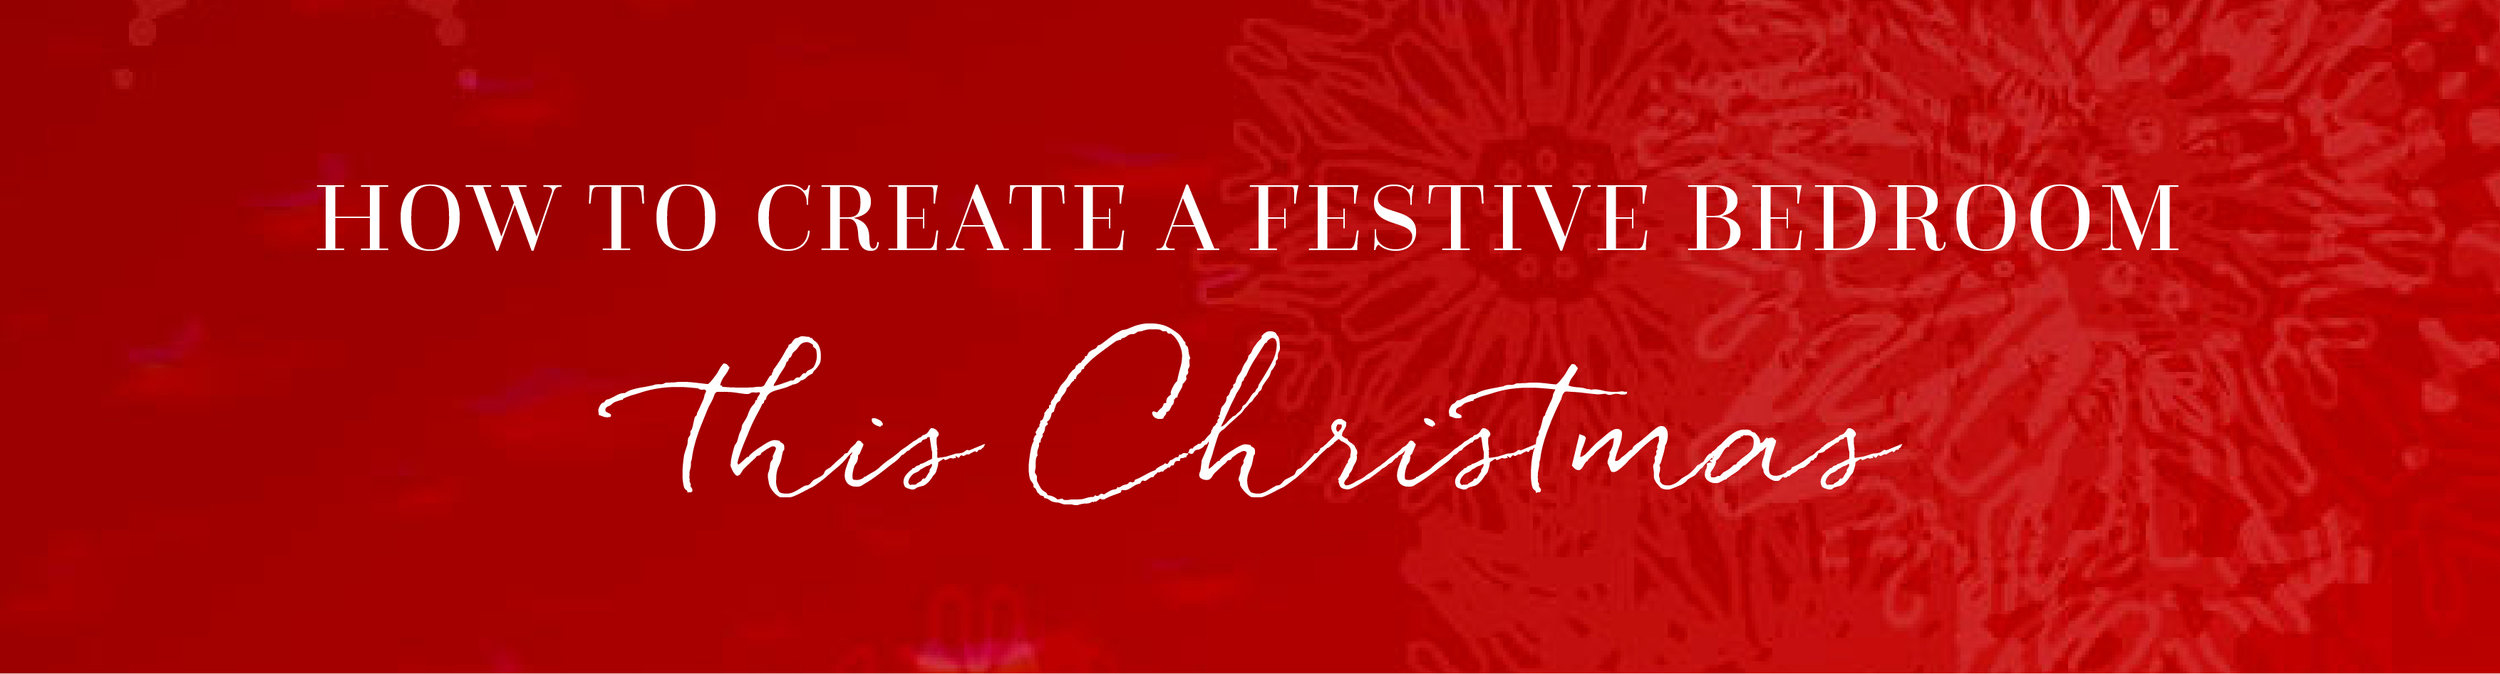 Festive Bedroom Blog_Header Graphic-01.jpg